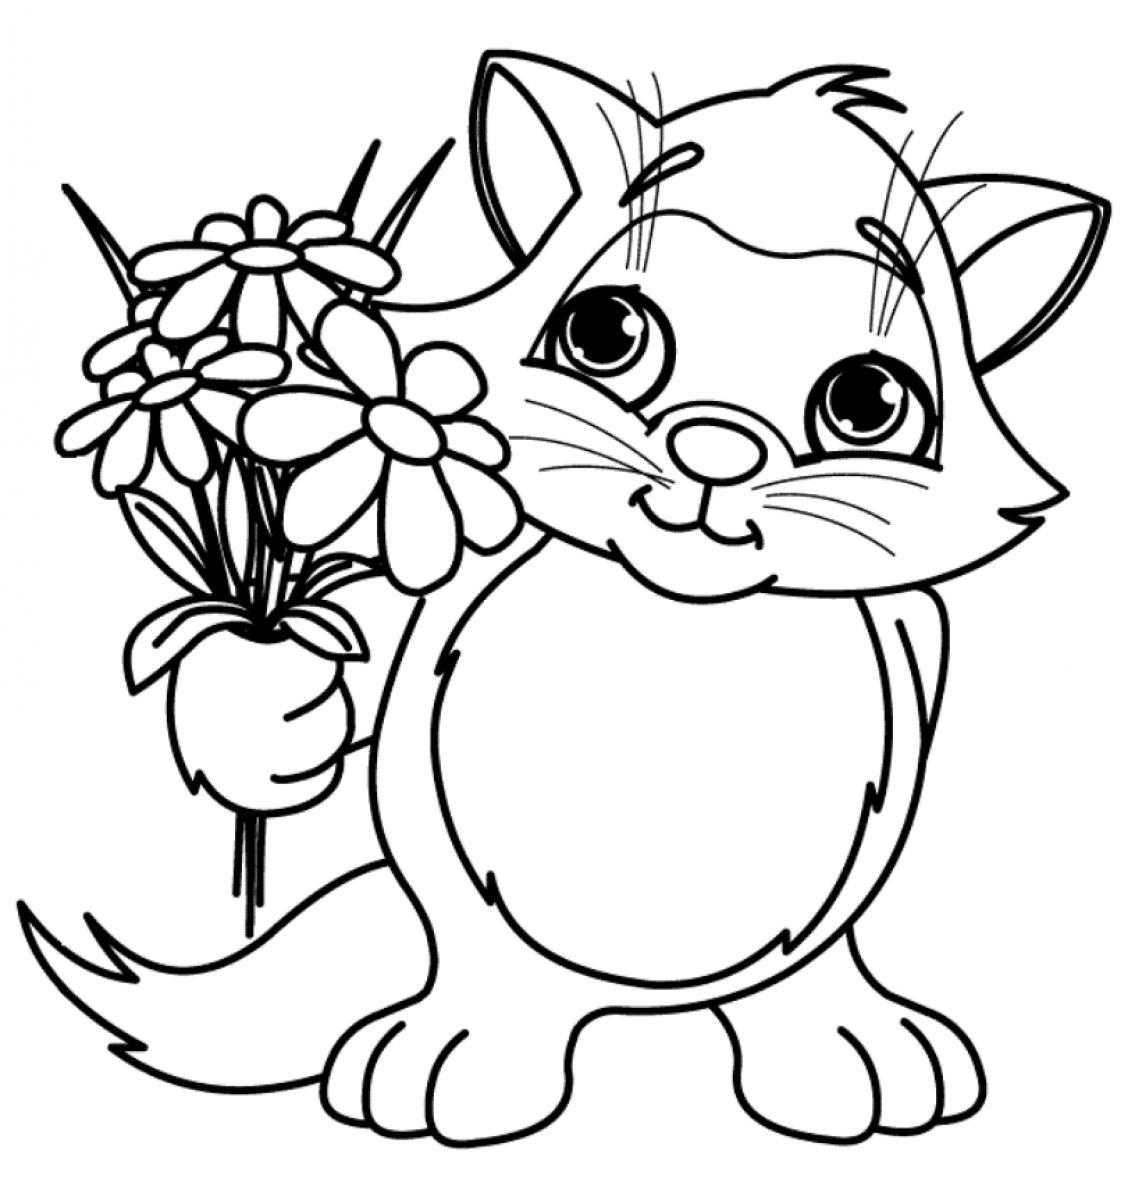 1135x1200 Cat brought flower coloring pages